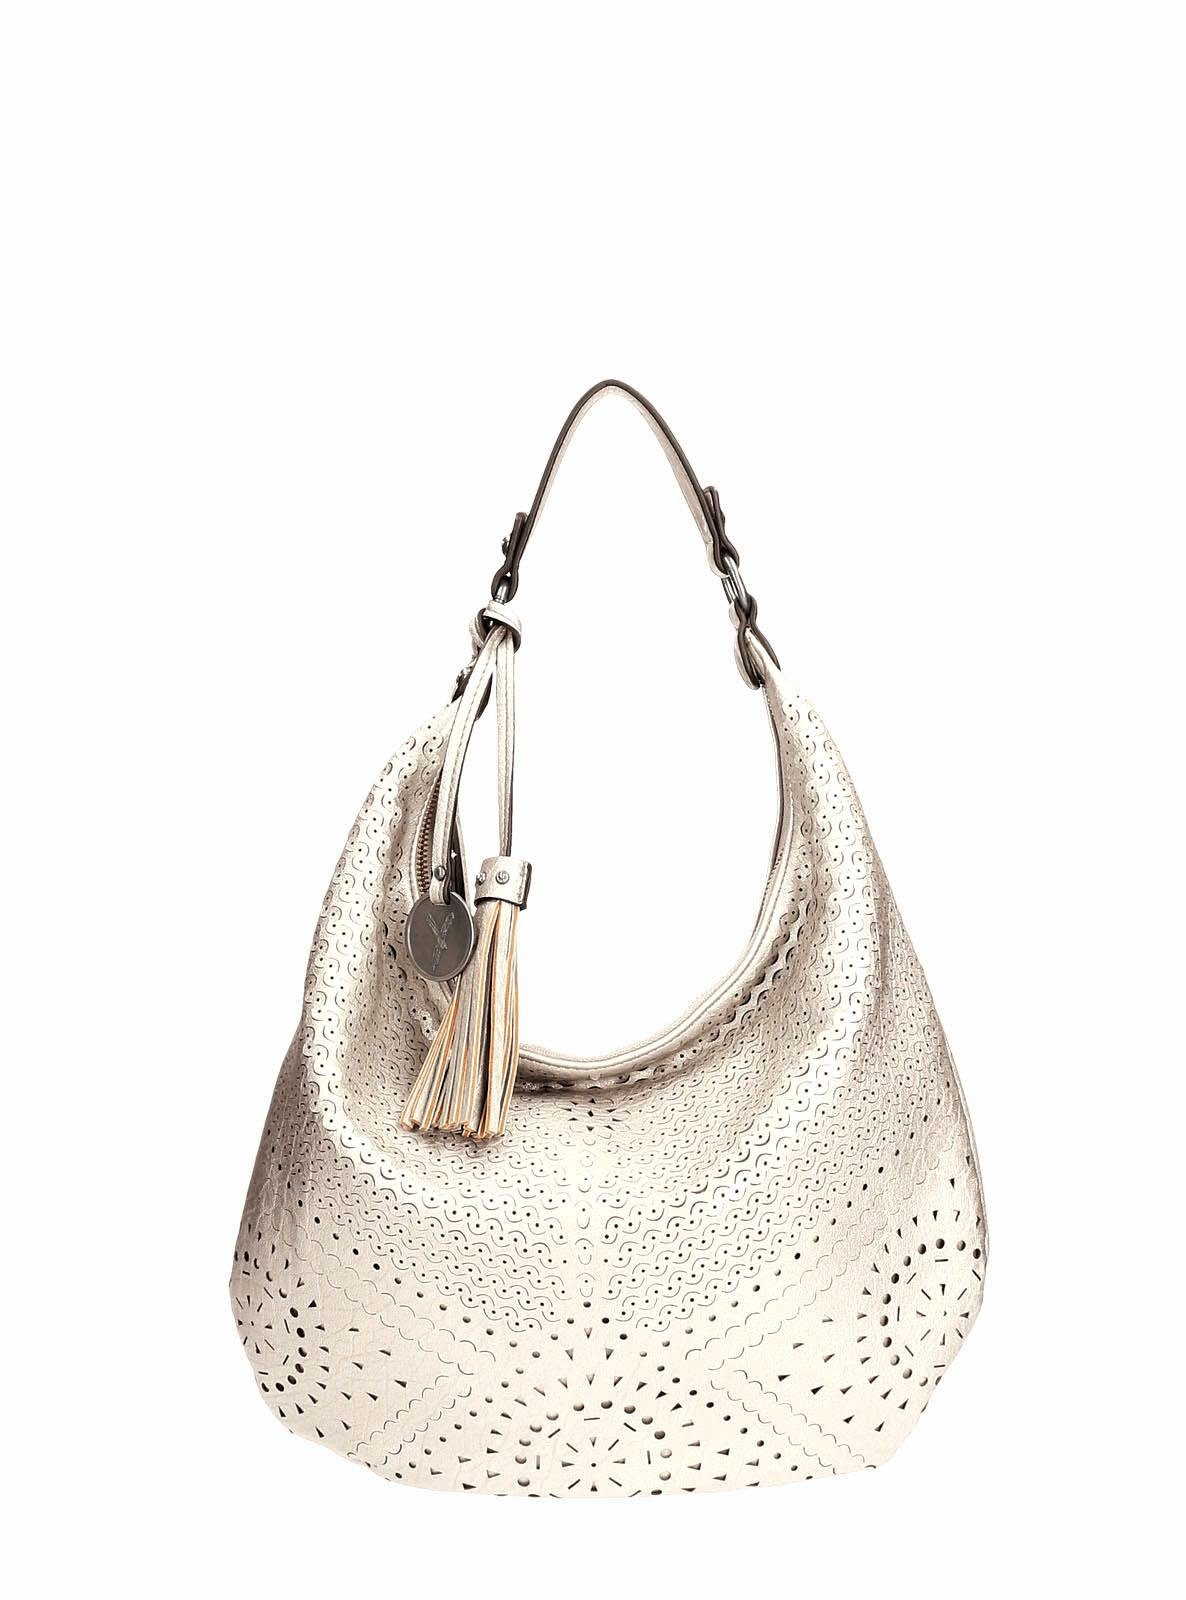 SURI FREY Hobo »MAY«, mit schöner Perforation und Metallic Optik